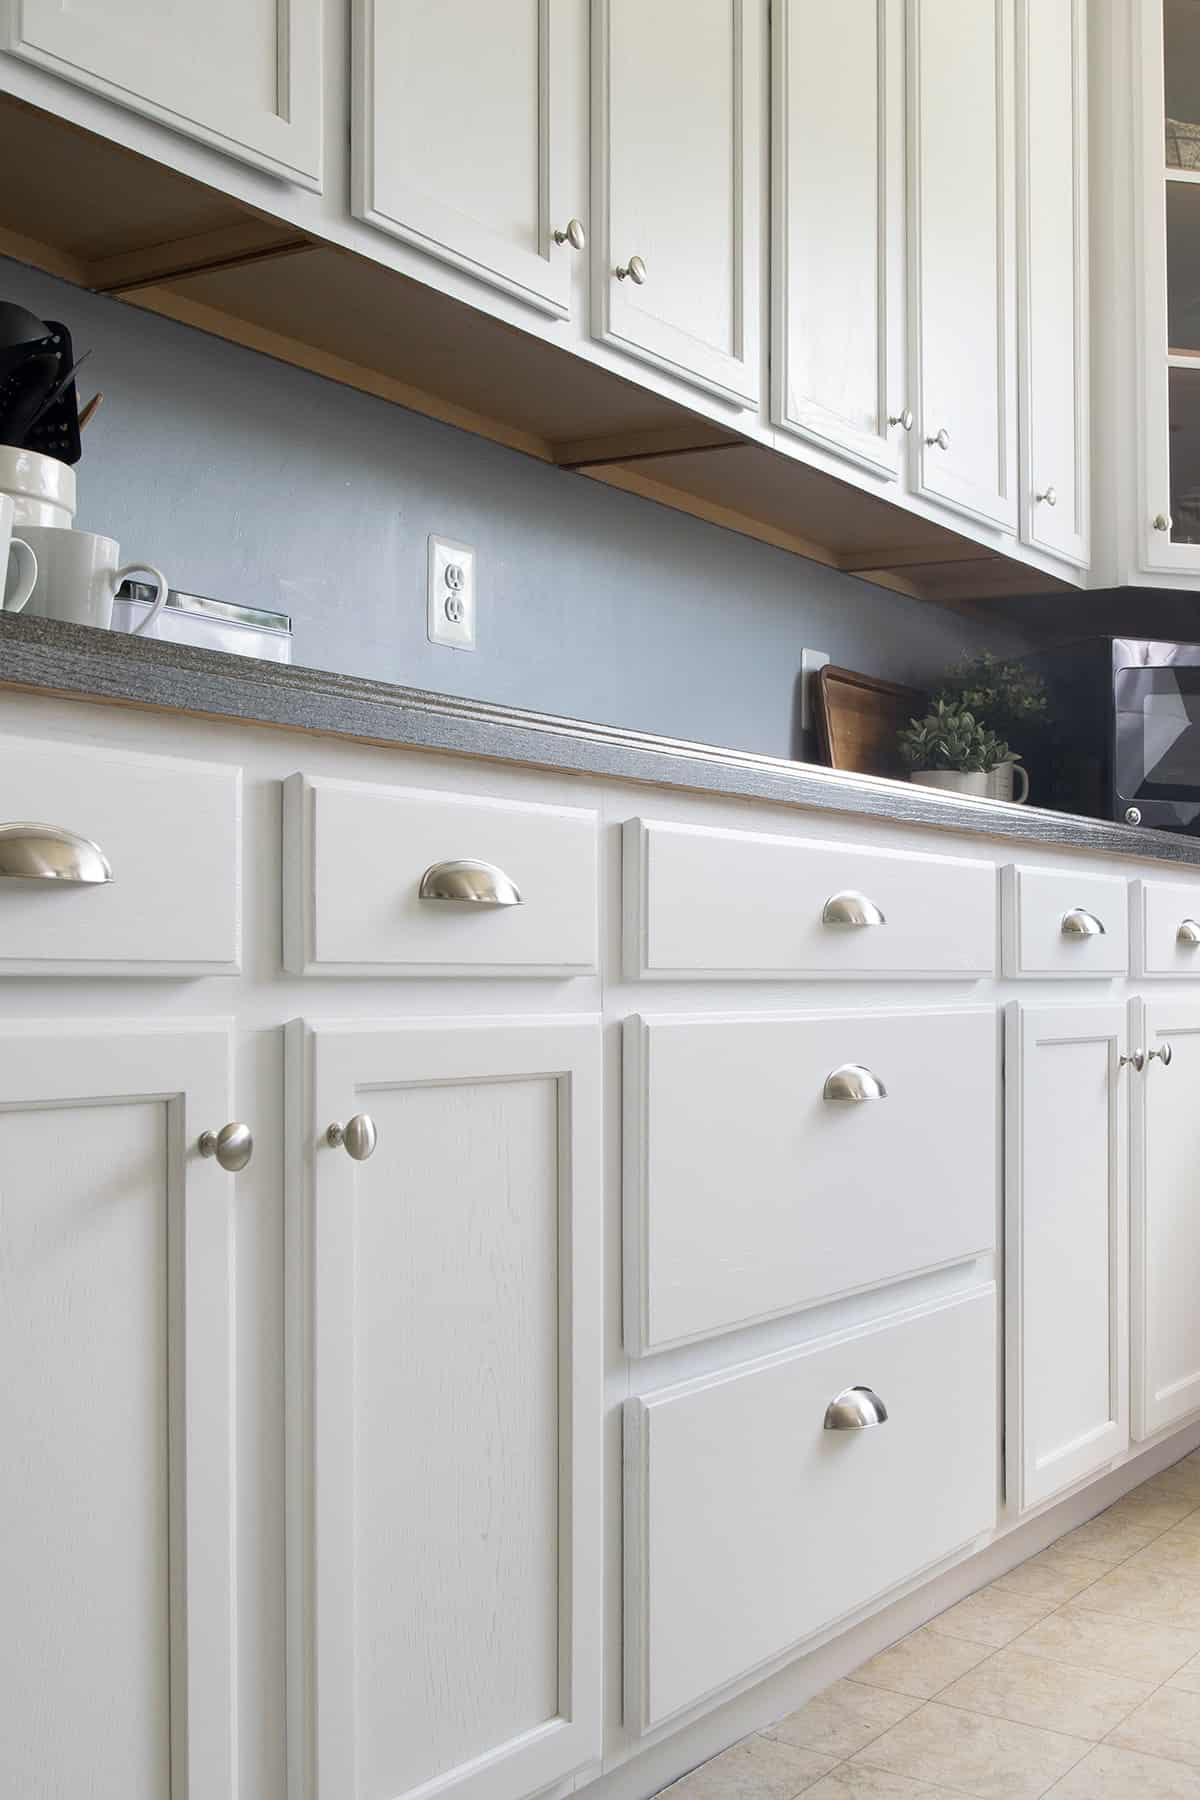 Close up of white painted kitchen cabinets.